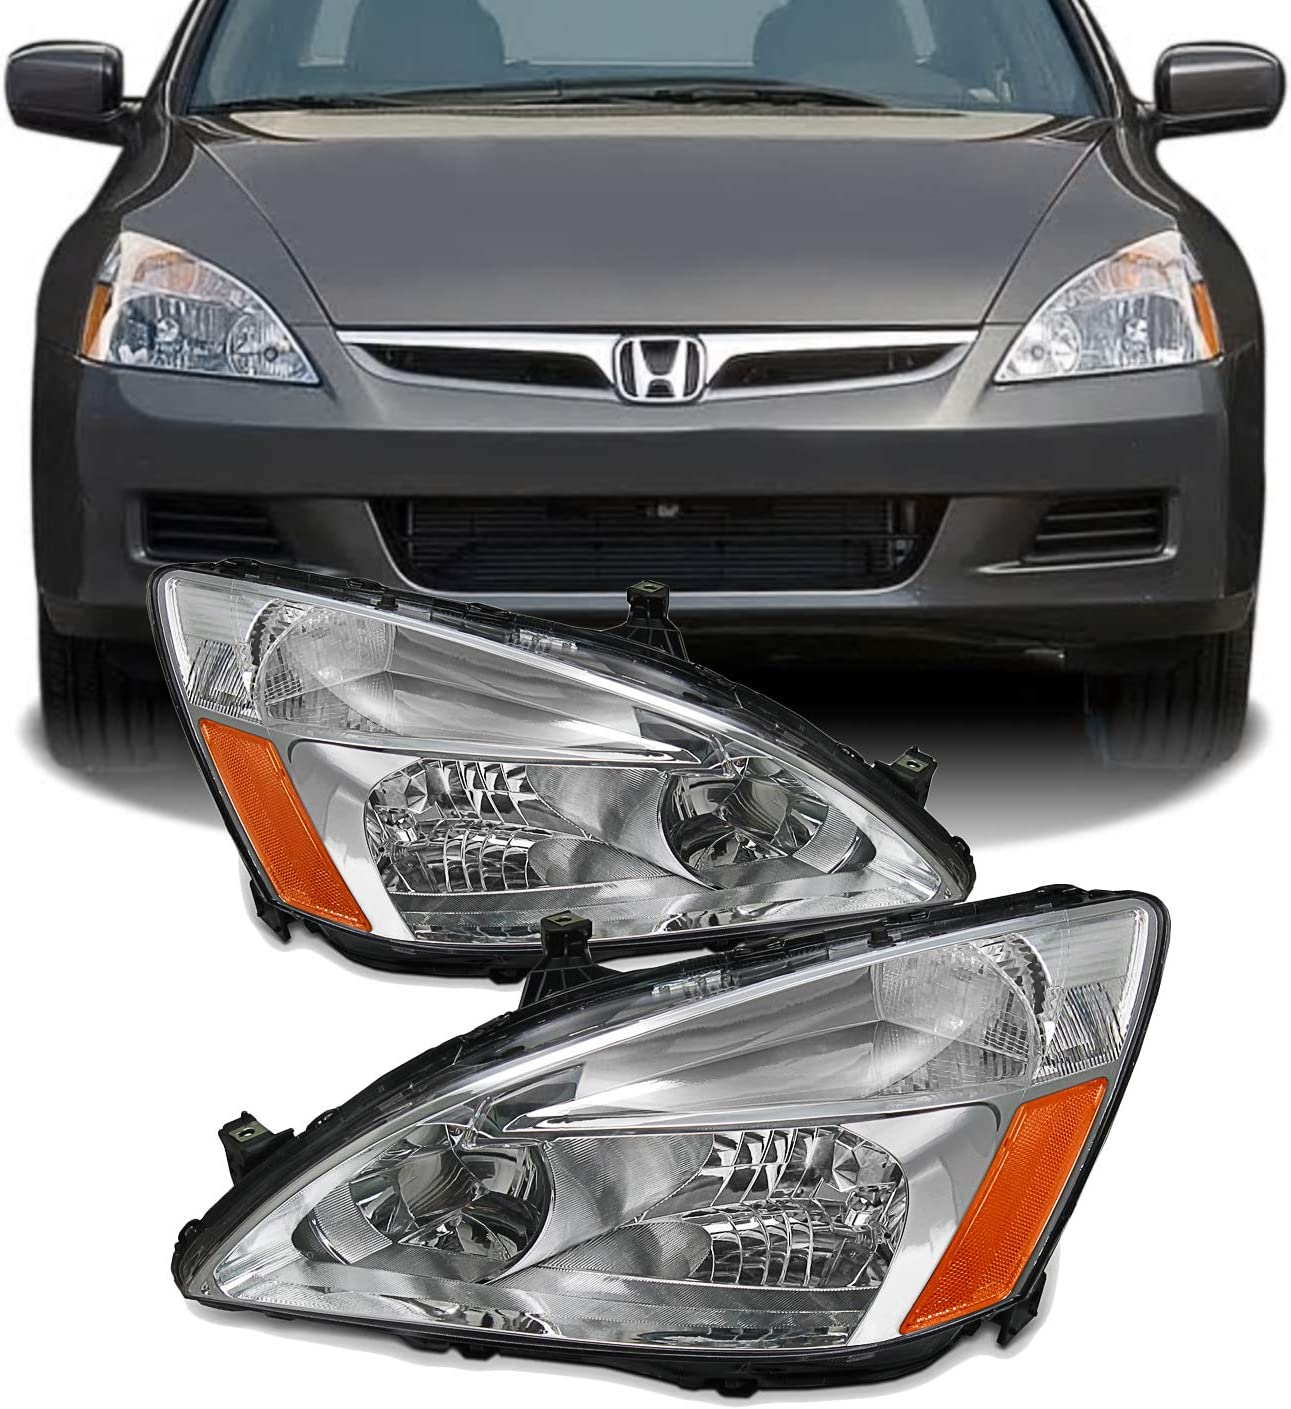 -Black Driver Side with Install kit 2003 Honda Accord Coupe Post Mount Spotlight 100W Halogen 6 inch Larson Electronics 1015P9JFP6A